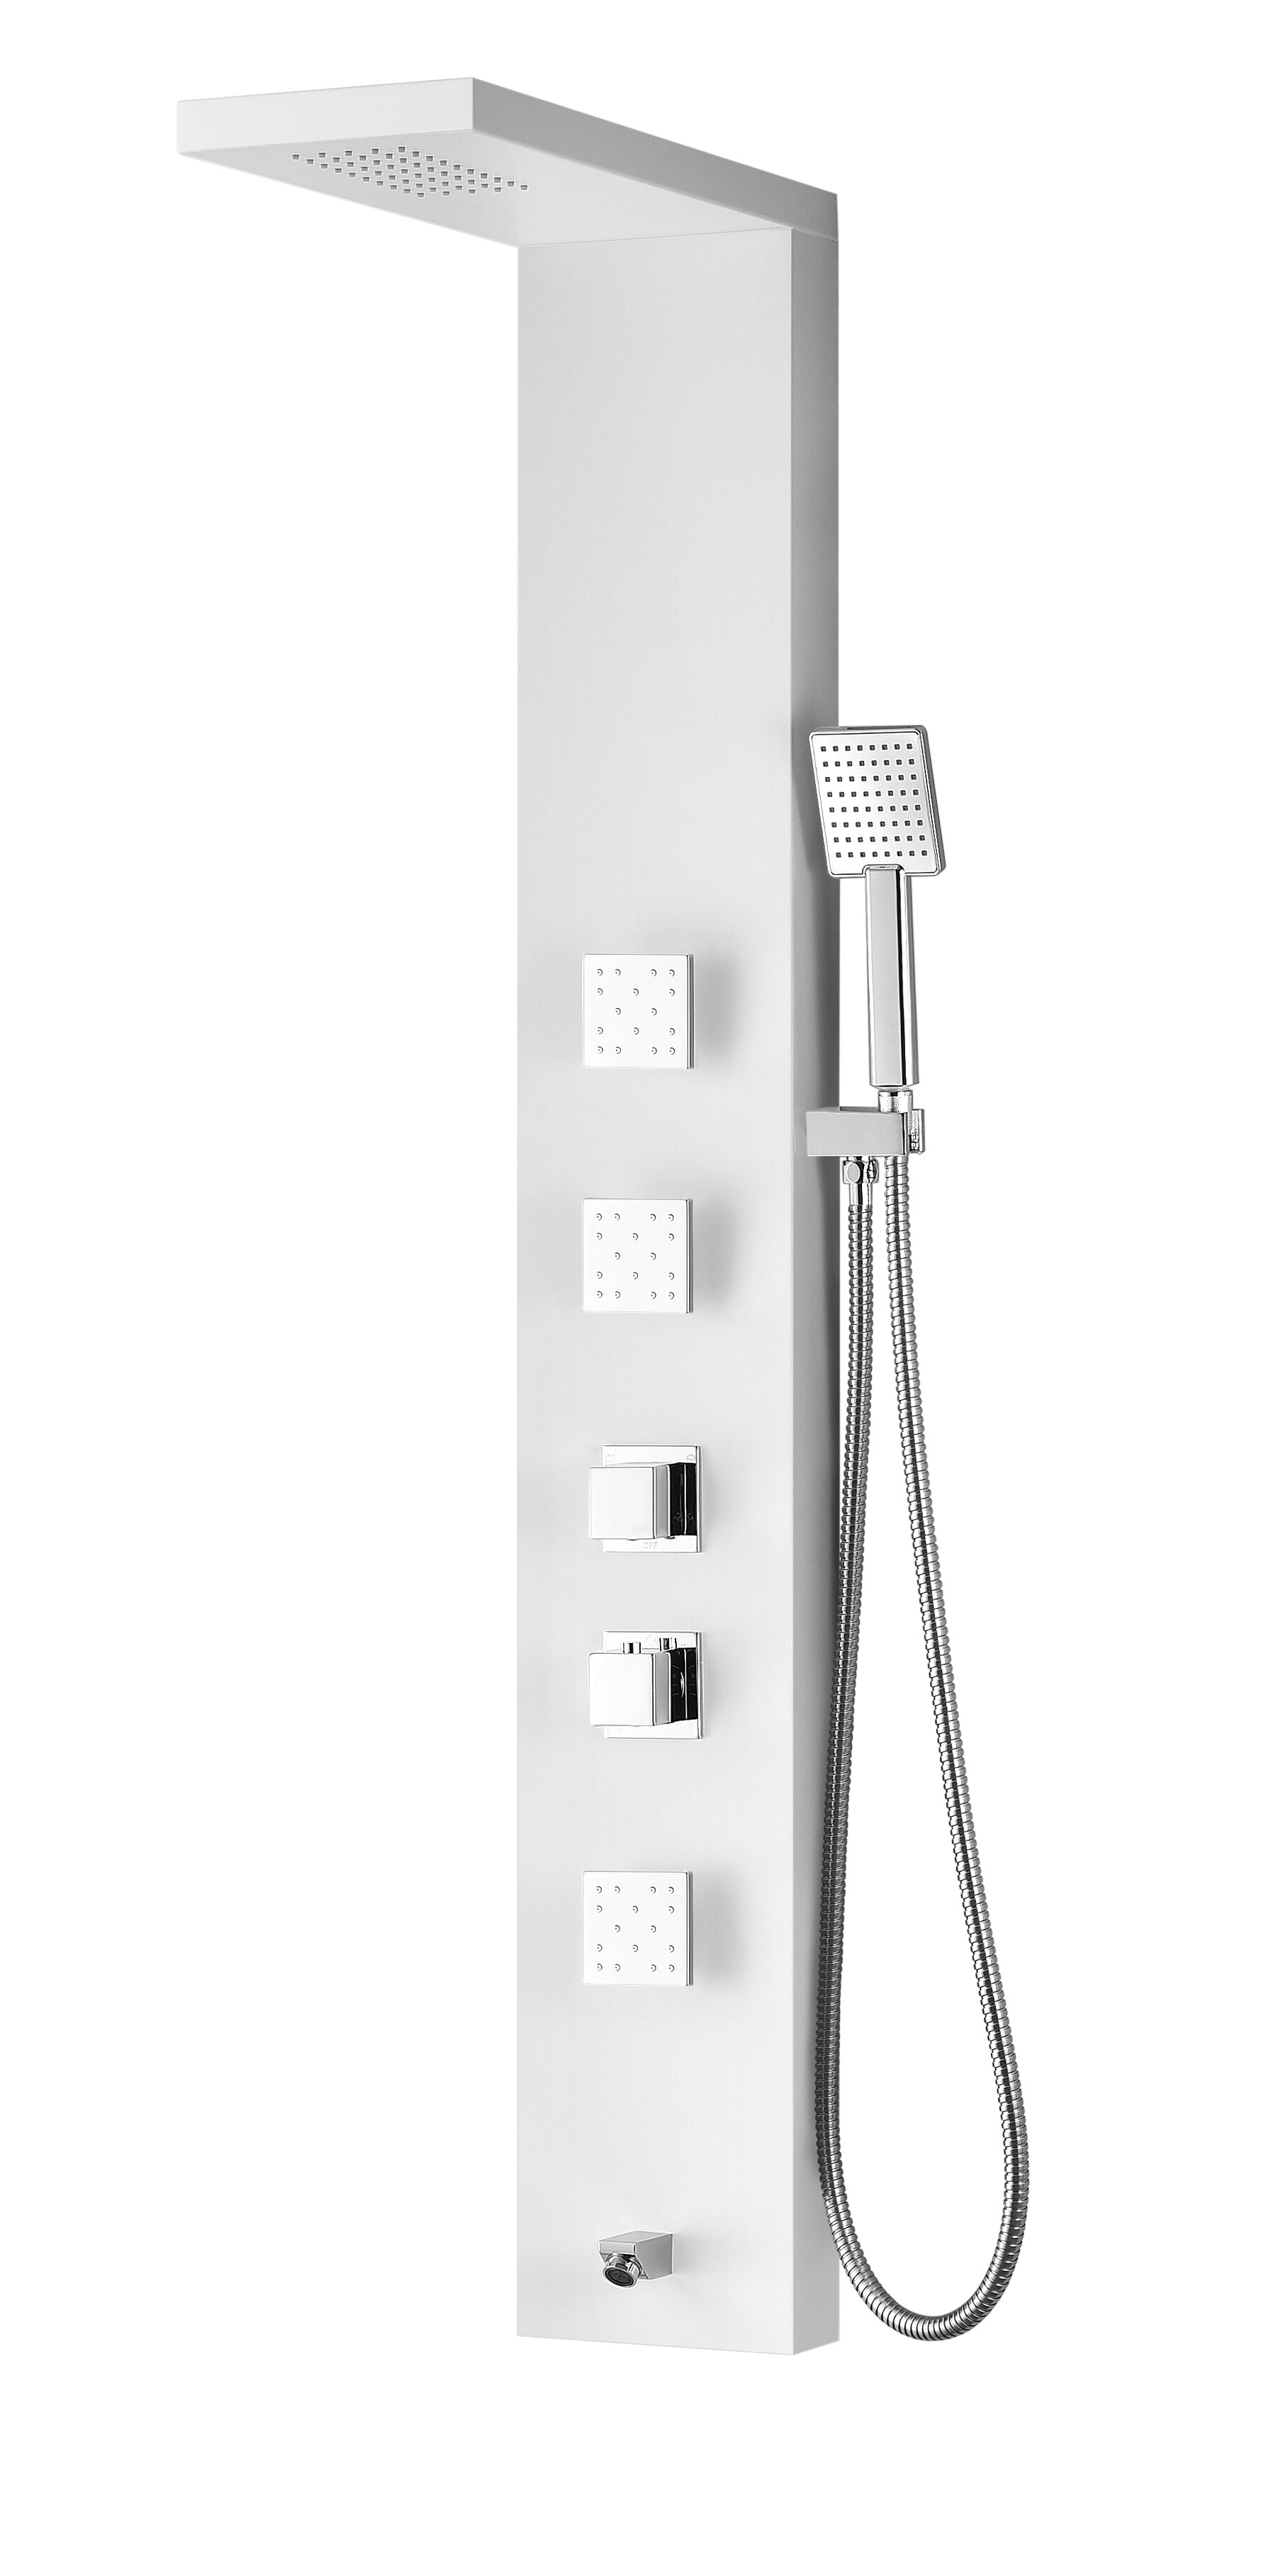 gpm panel showers tub standard with bathroom american commercial spout system shower